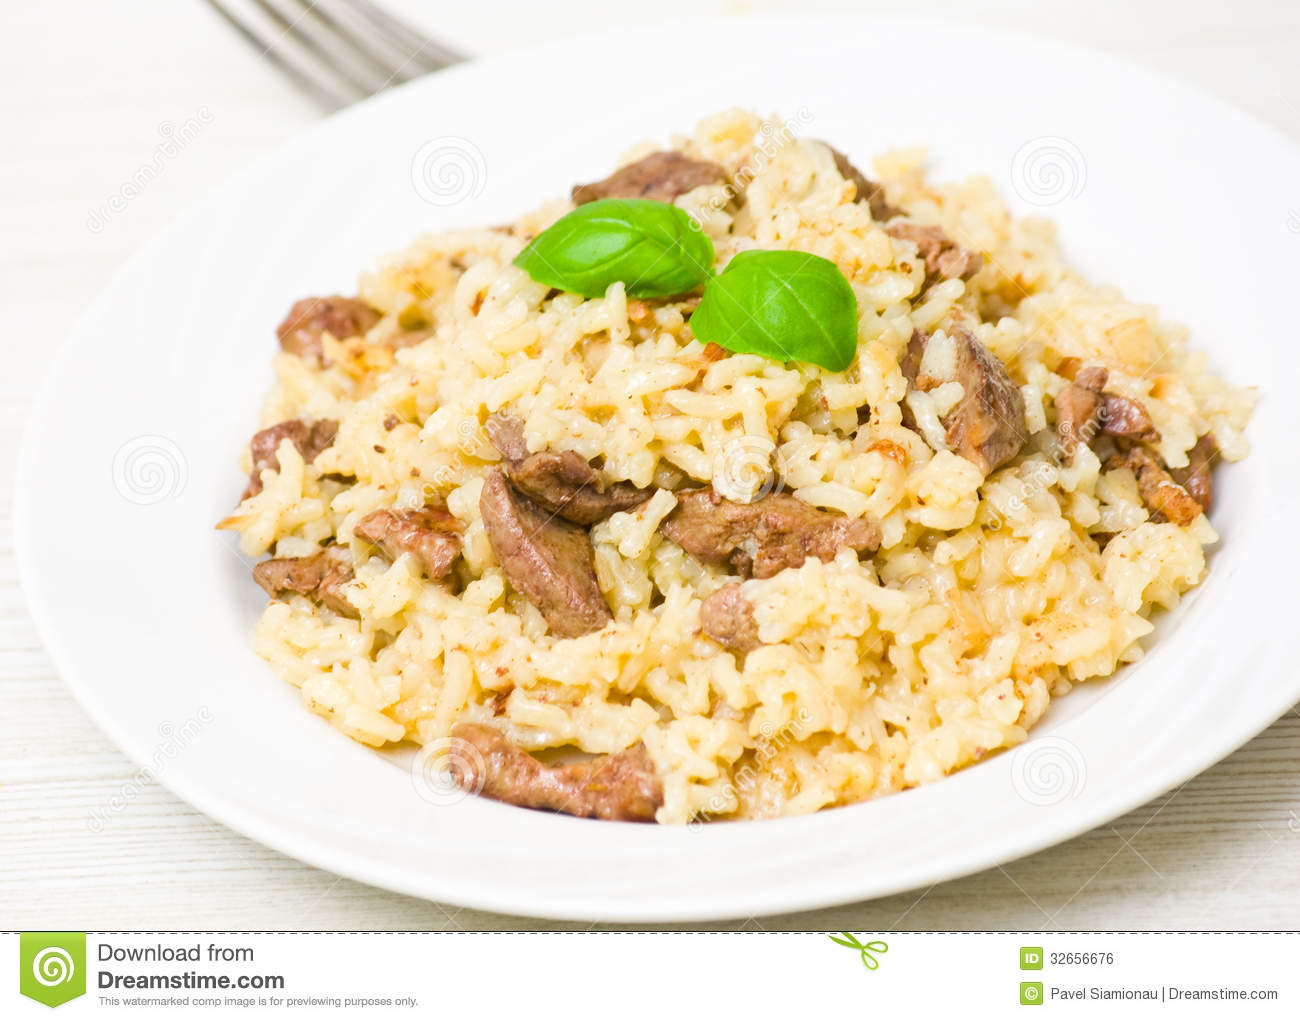 Risotto med lever